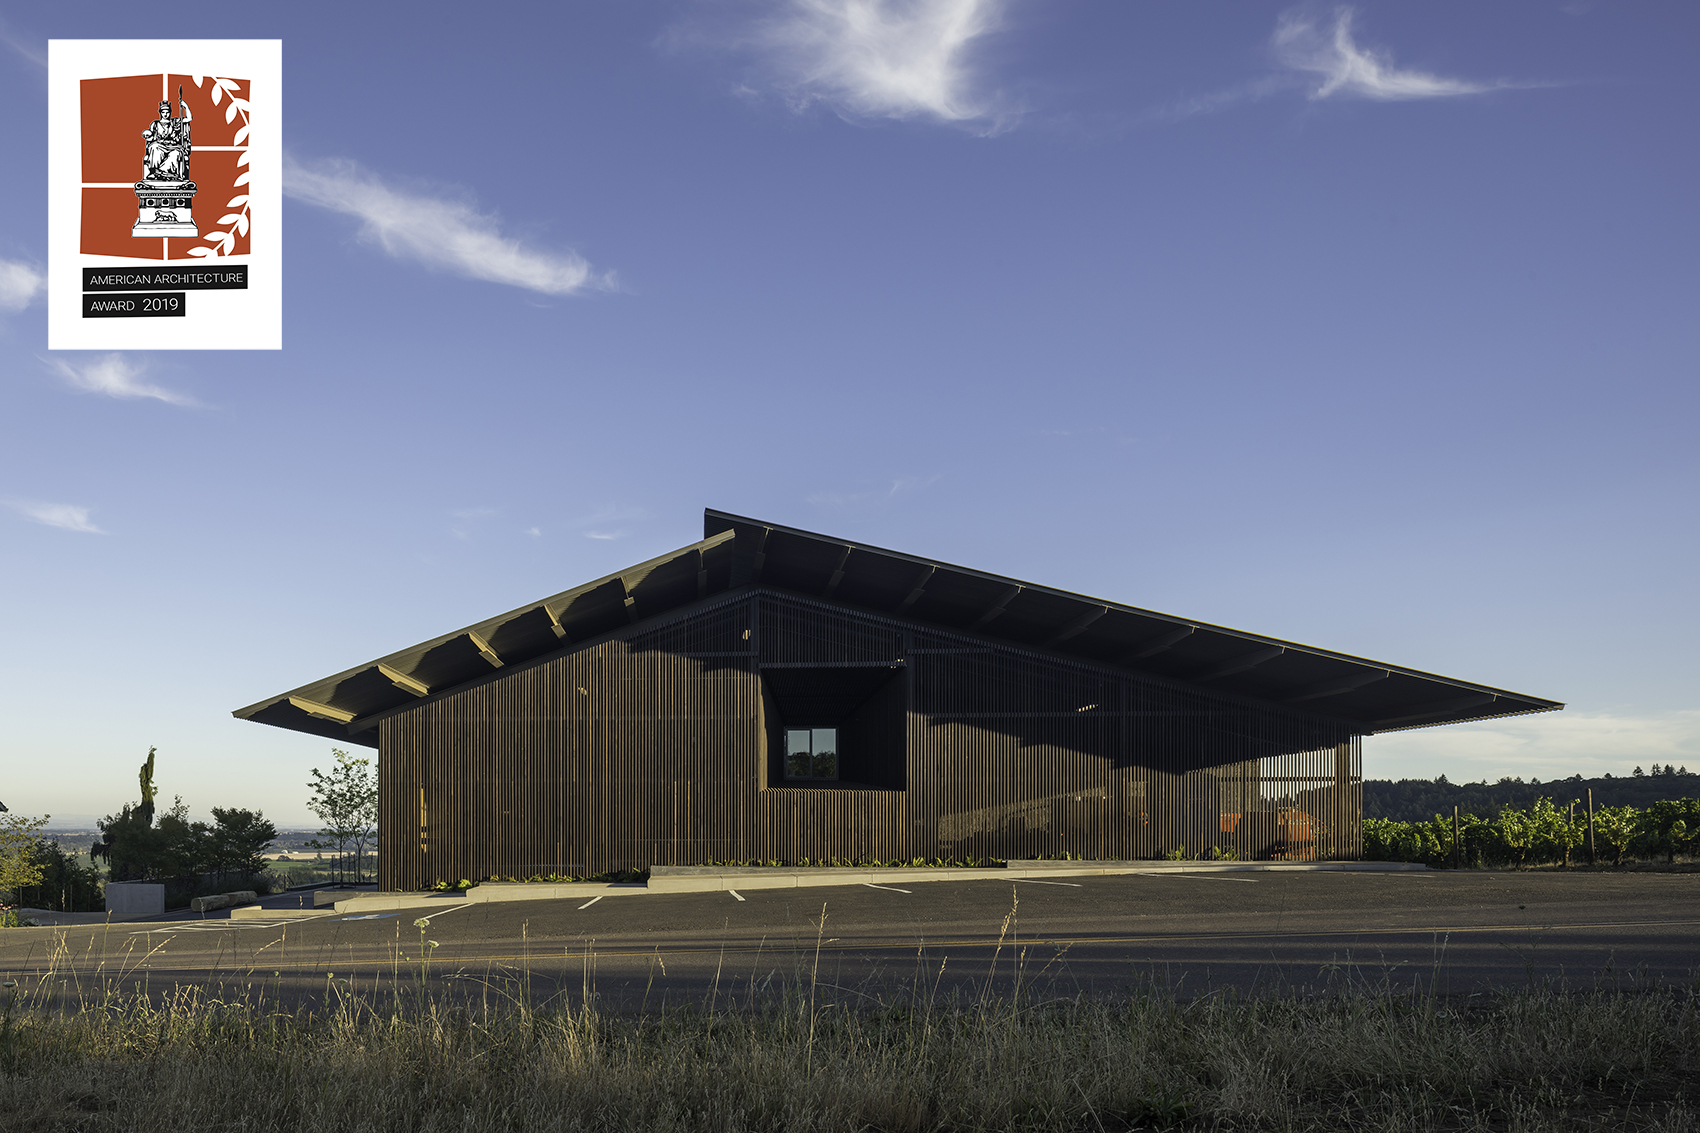 American Architecture Award winner Furioso Vineyards